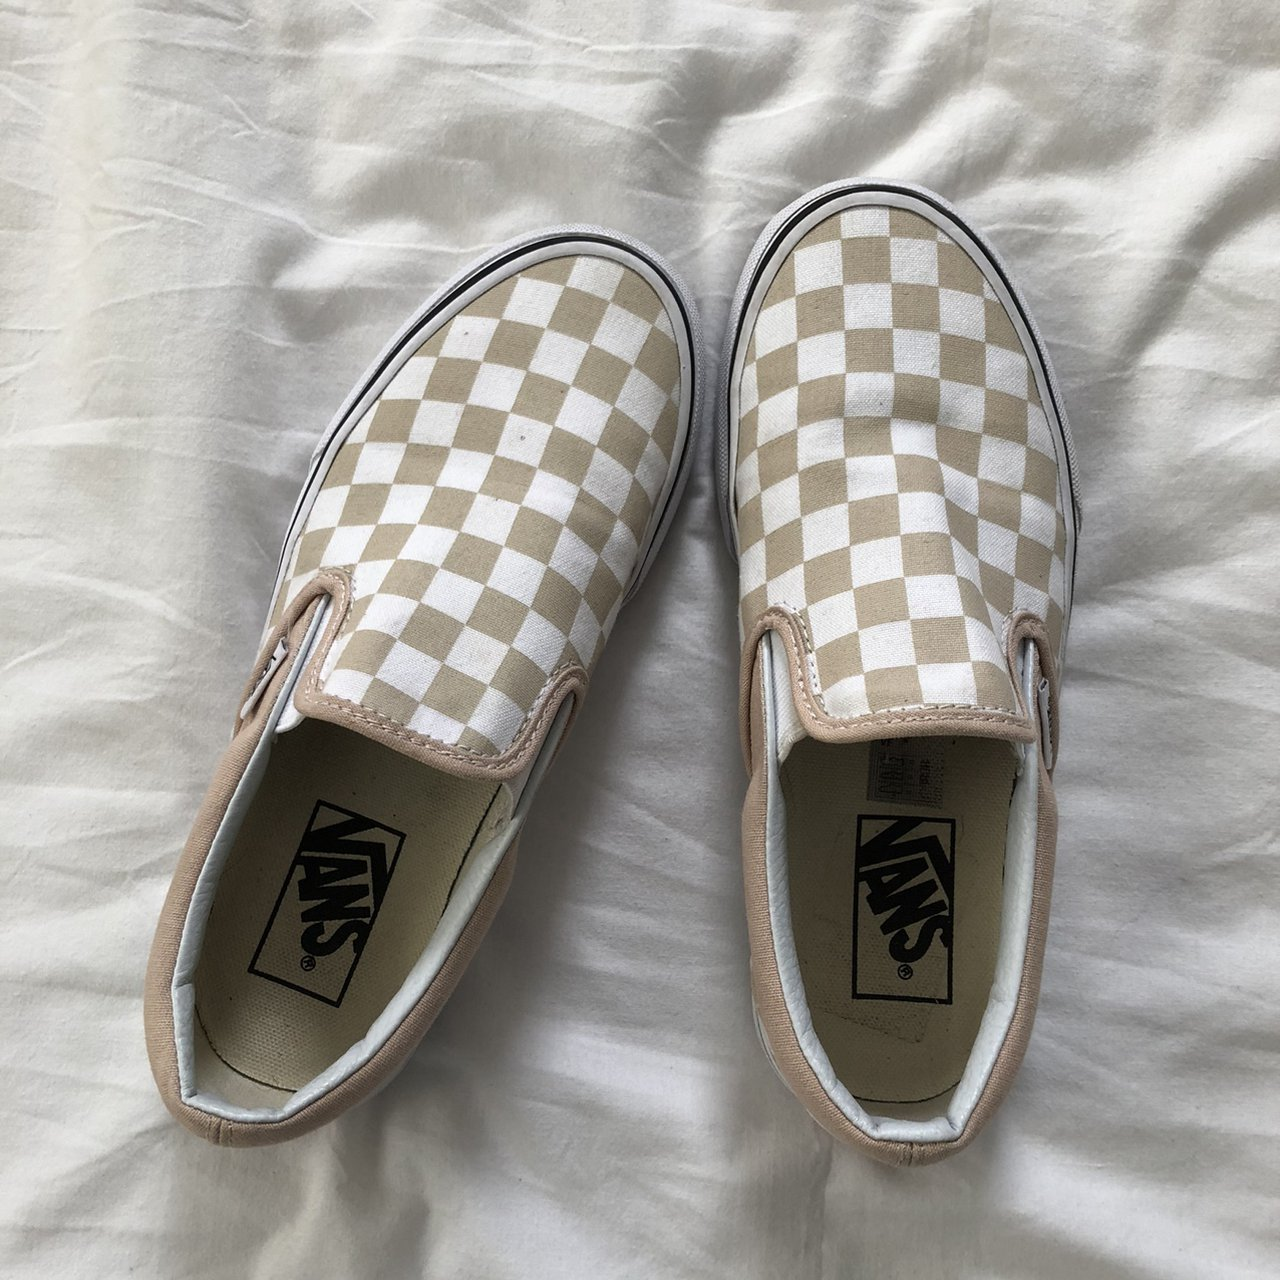 Vans Nude Checkered Slip Ons Classic